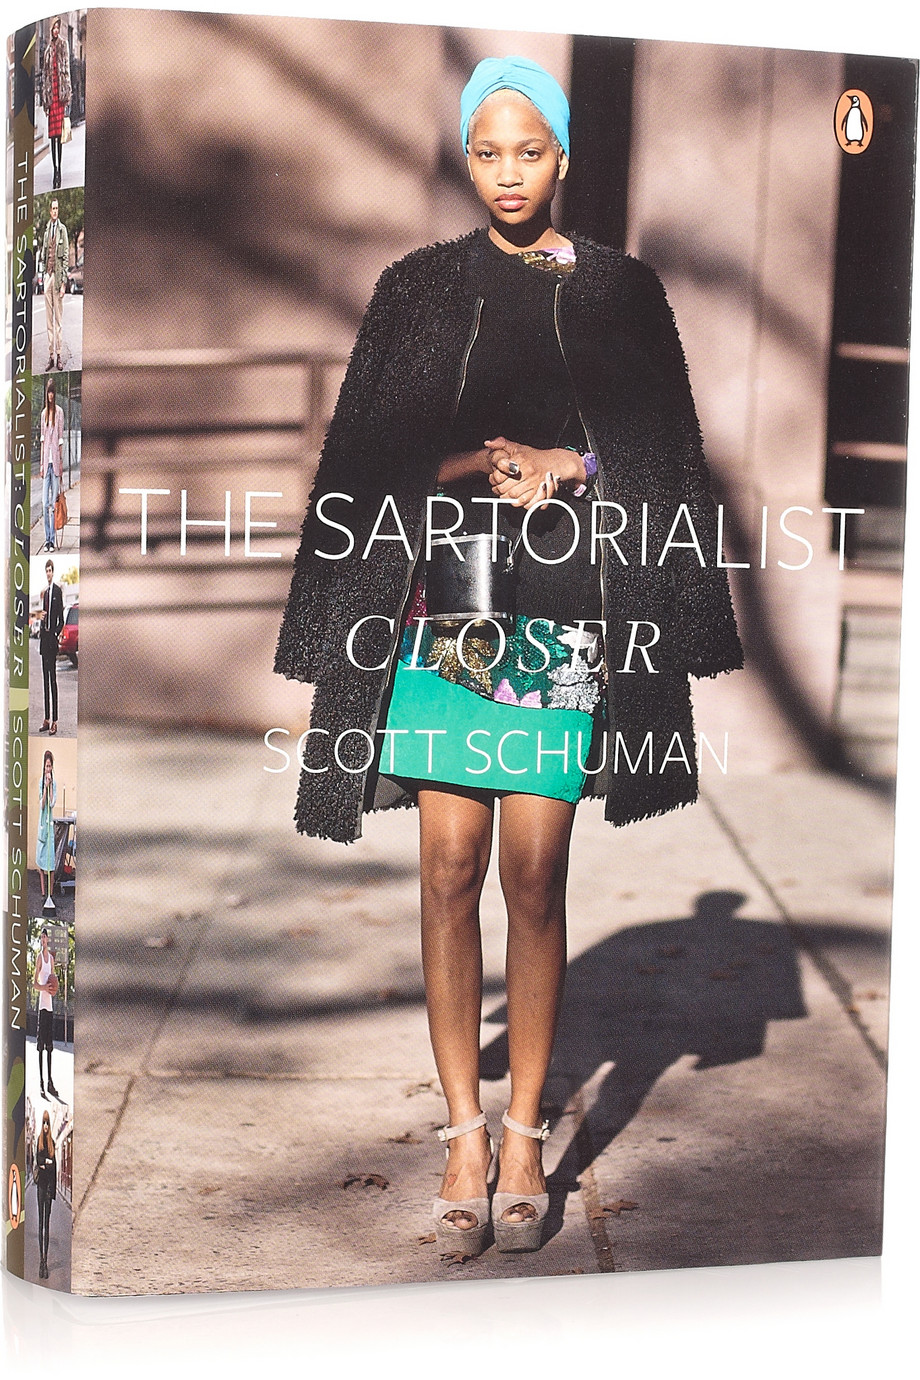 "The Sartorialist ""Closer"" by Scott Schuman $30"